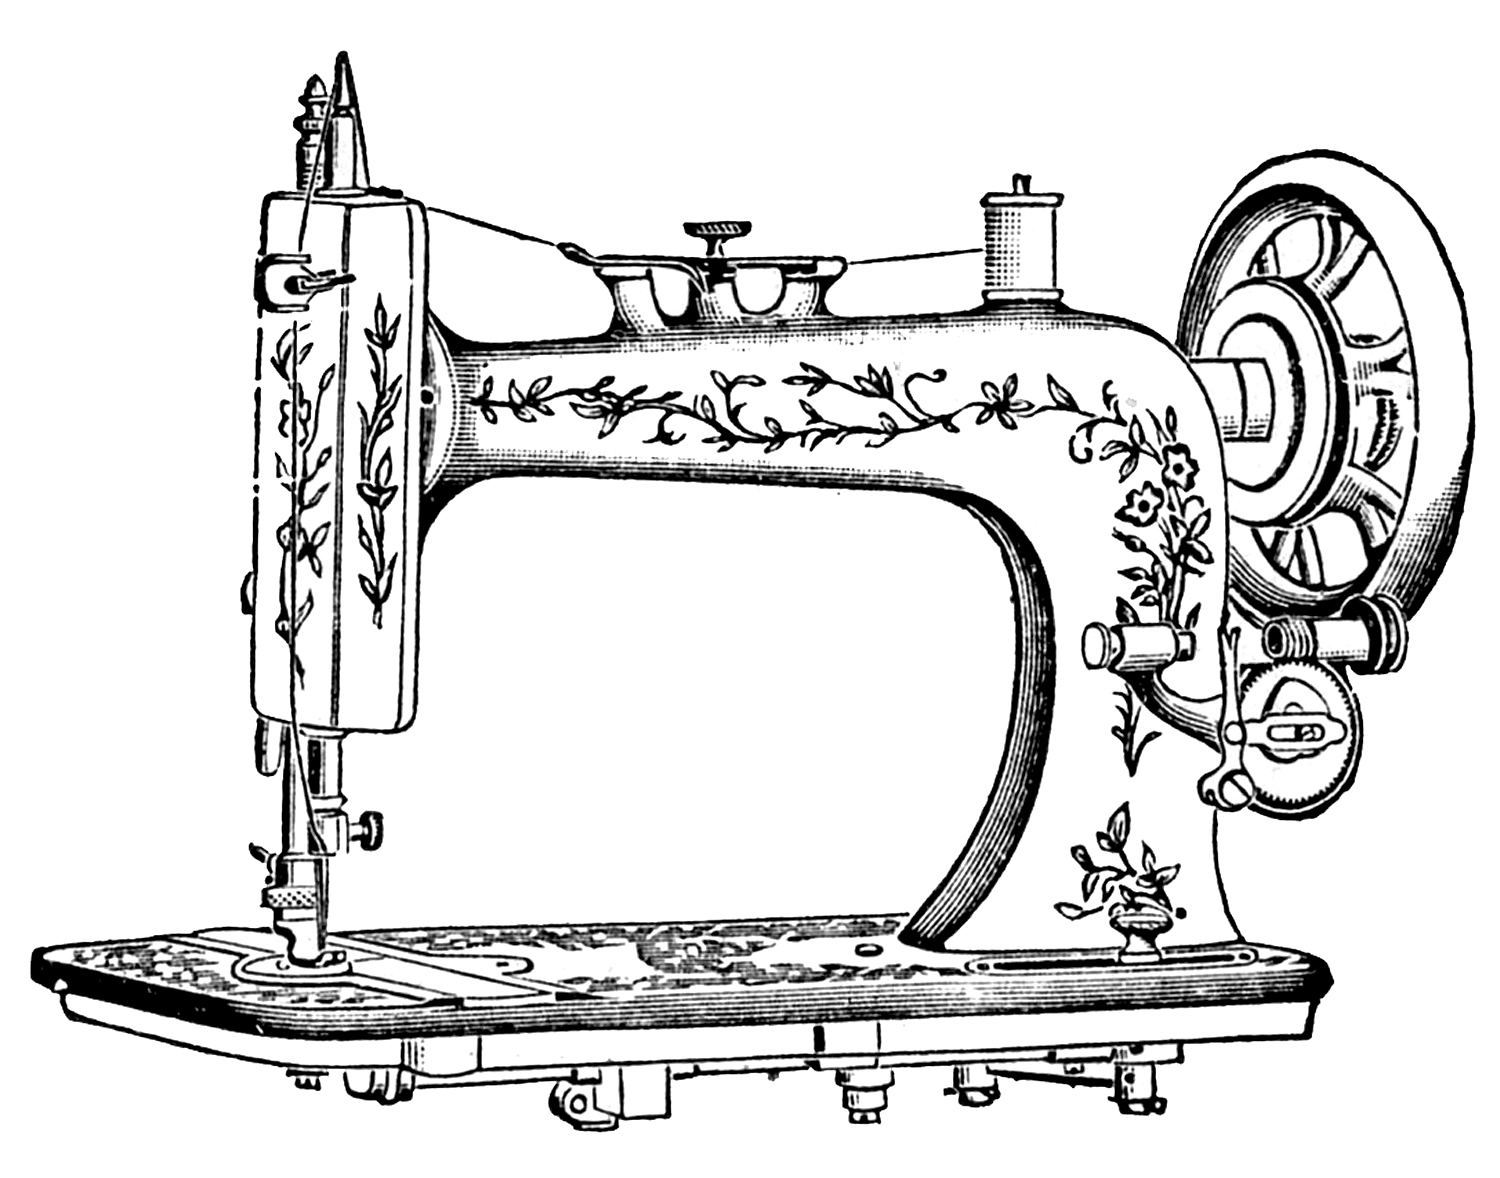 Antique Clip Art u2013 Pretty White Sewi-Antique Clip Art u2013 Pretty White Sewing Machine-16